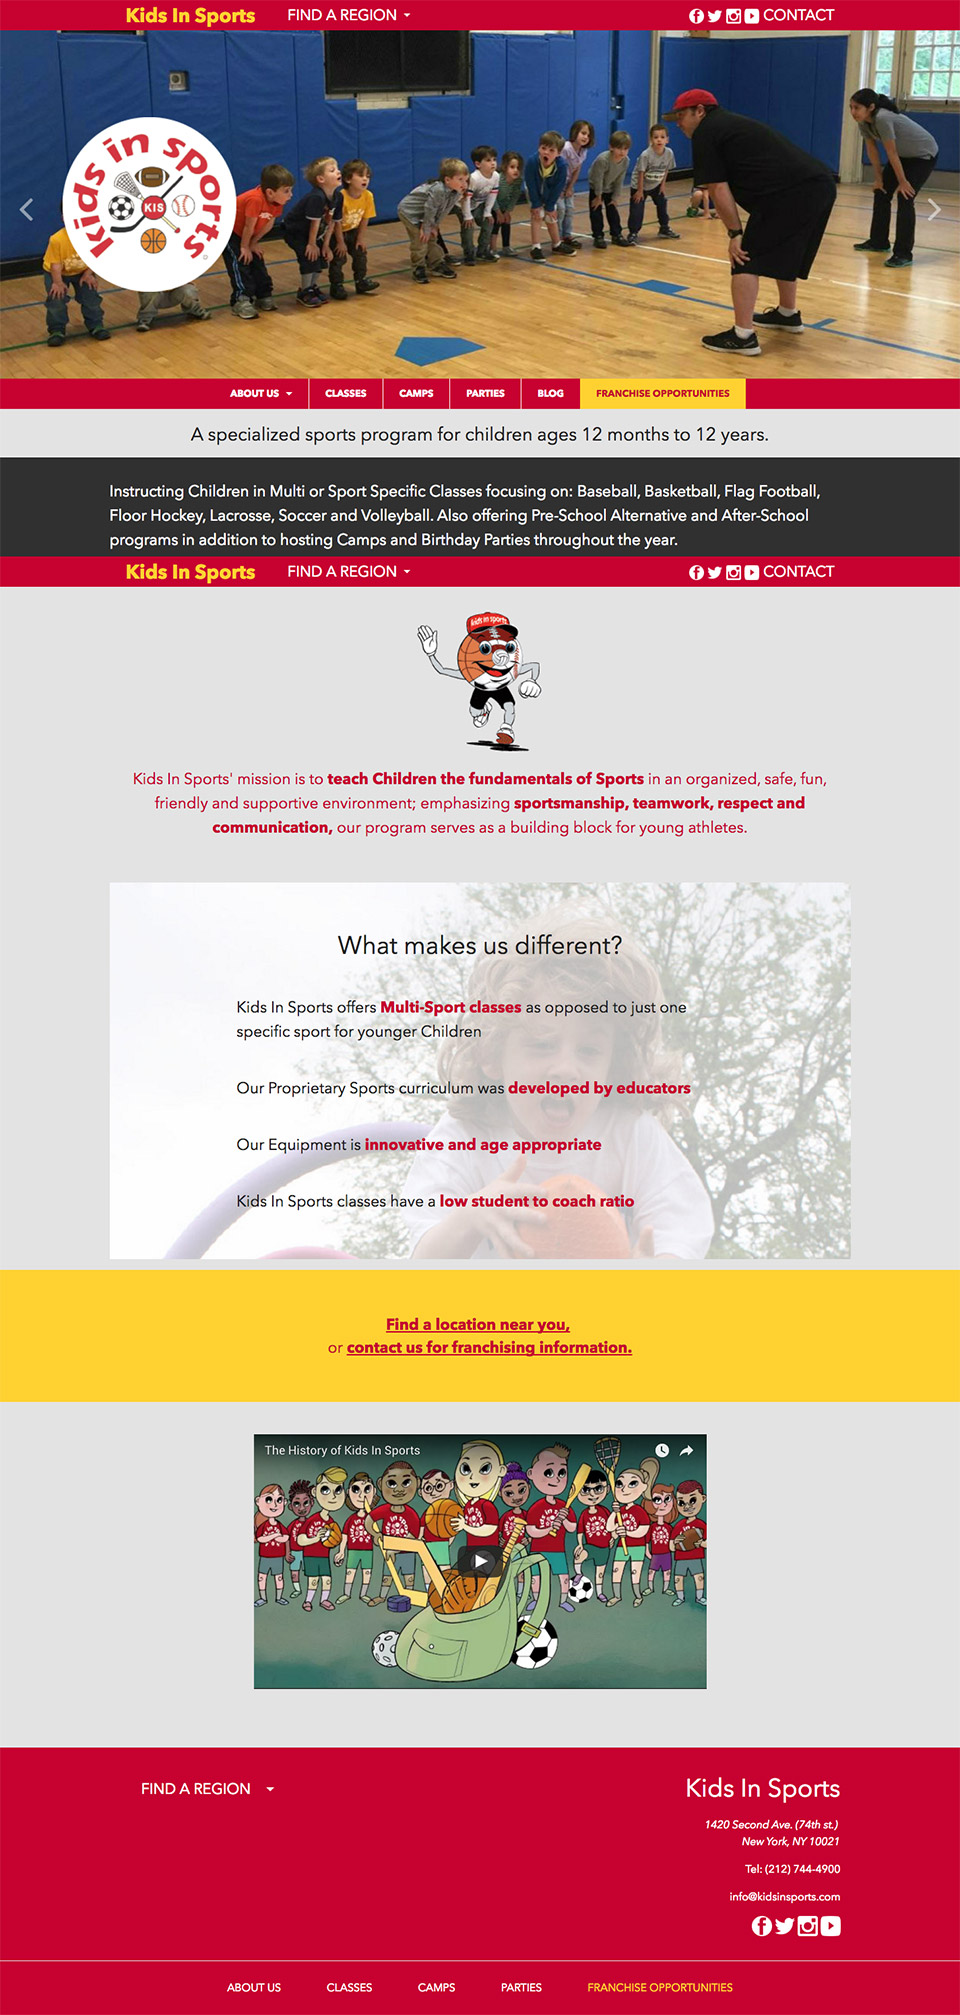 Kids In Sports: Full Kids In Sports Homepage